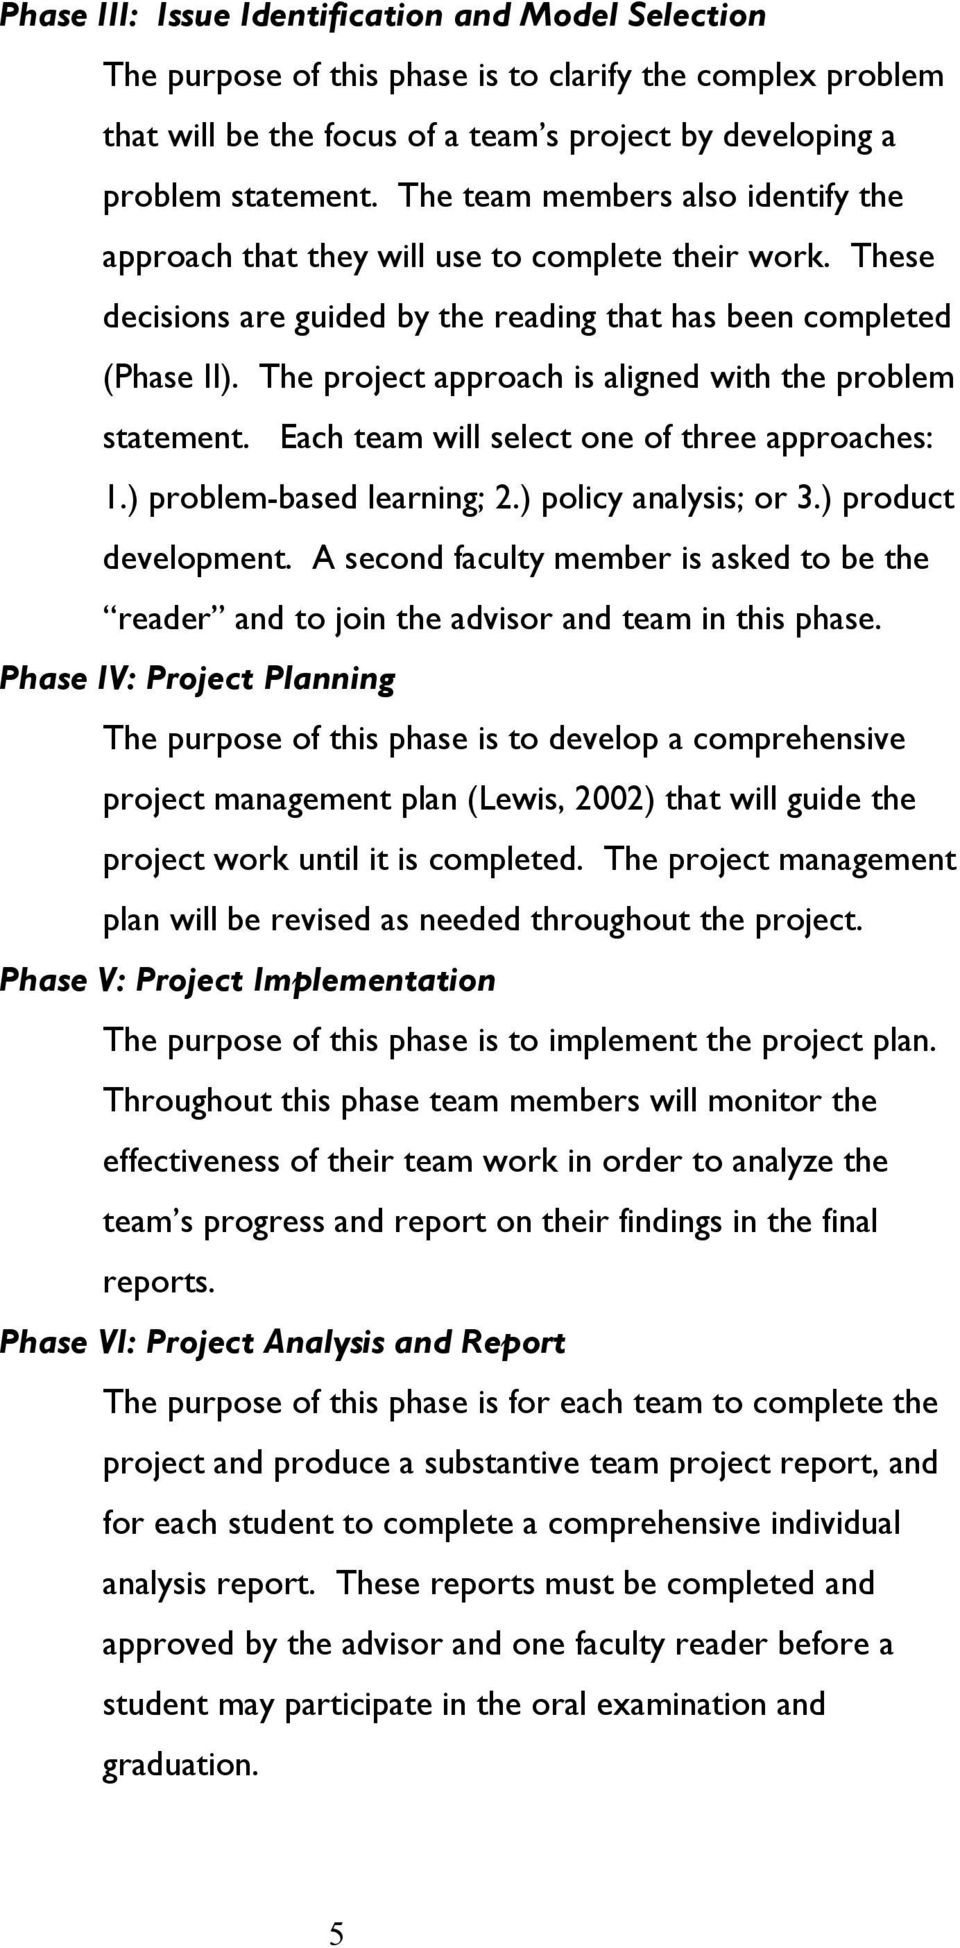 The project approach is aligned with the problem statement. Each team will select one of three approaches: 1.) problem-based learning; 2.) policy analysis; or 3.) product development.